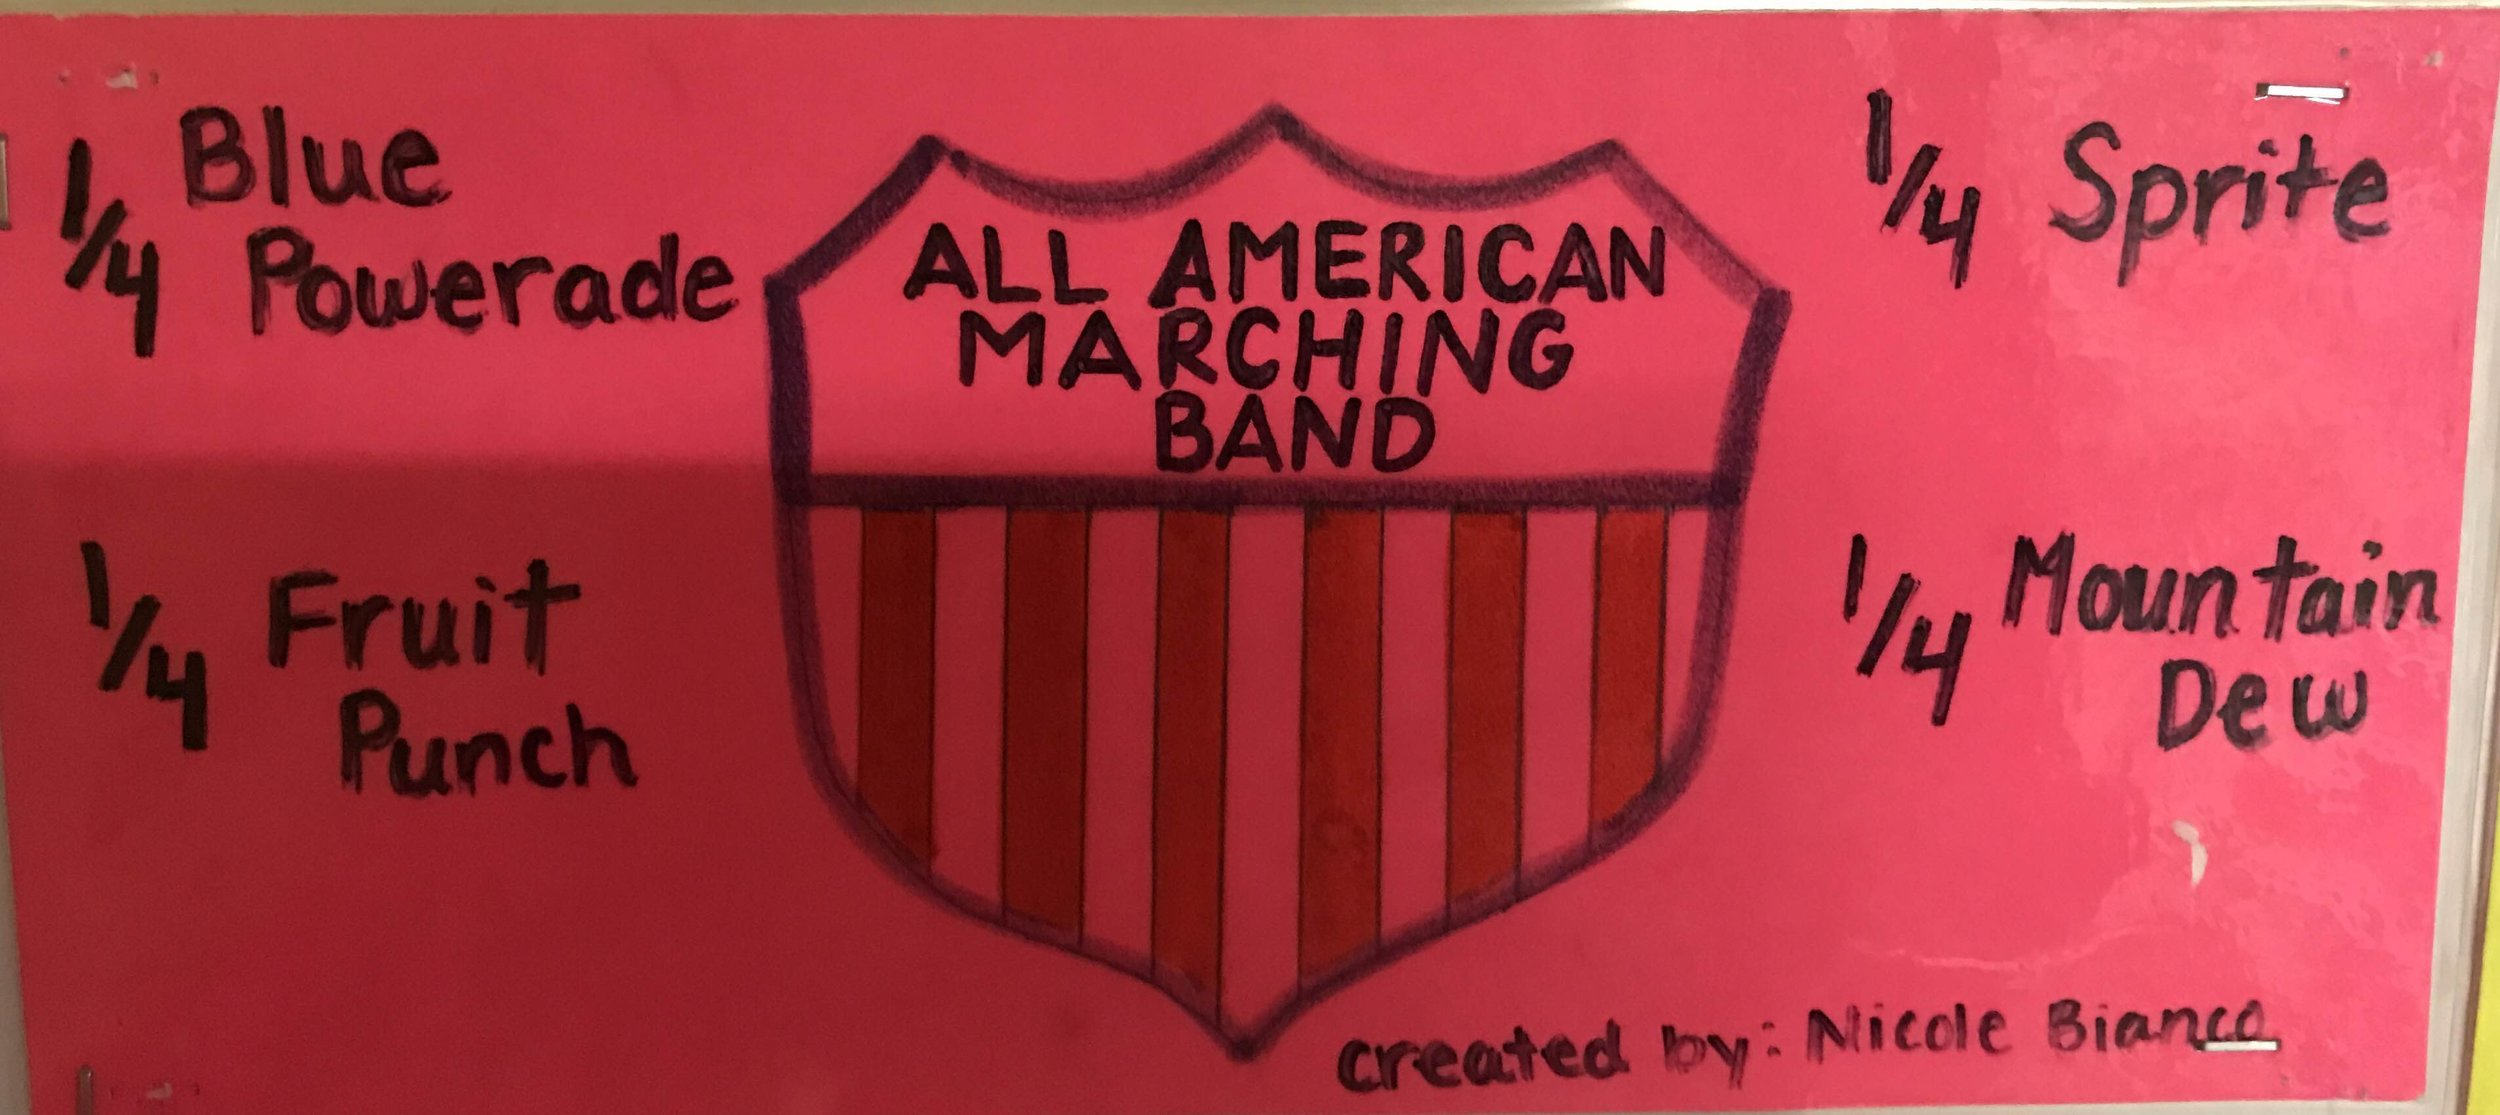 All American Marching Band.JPG